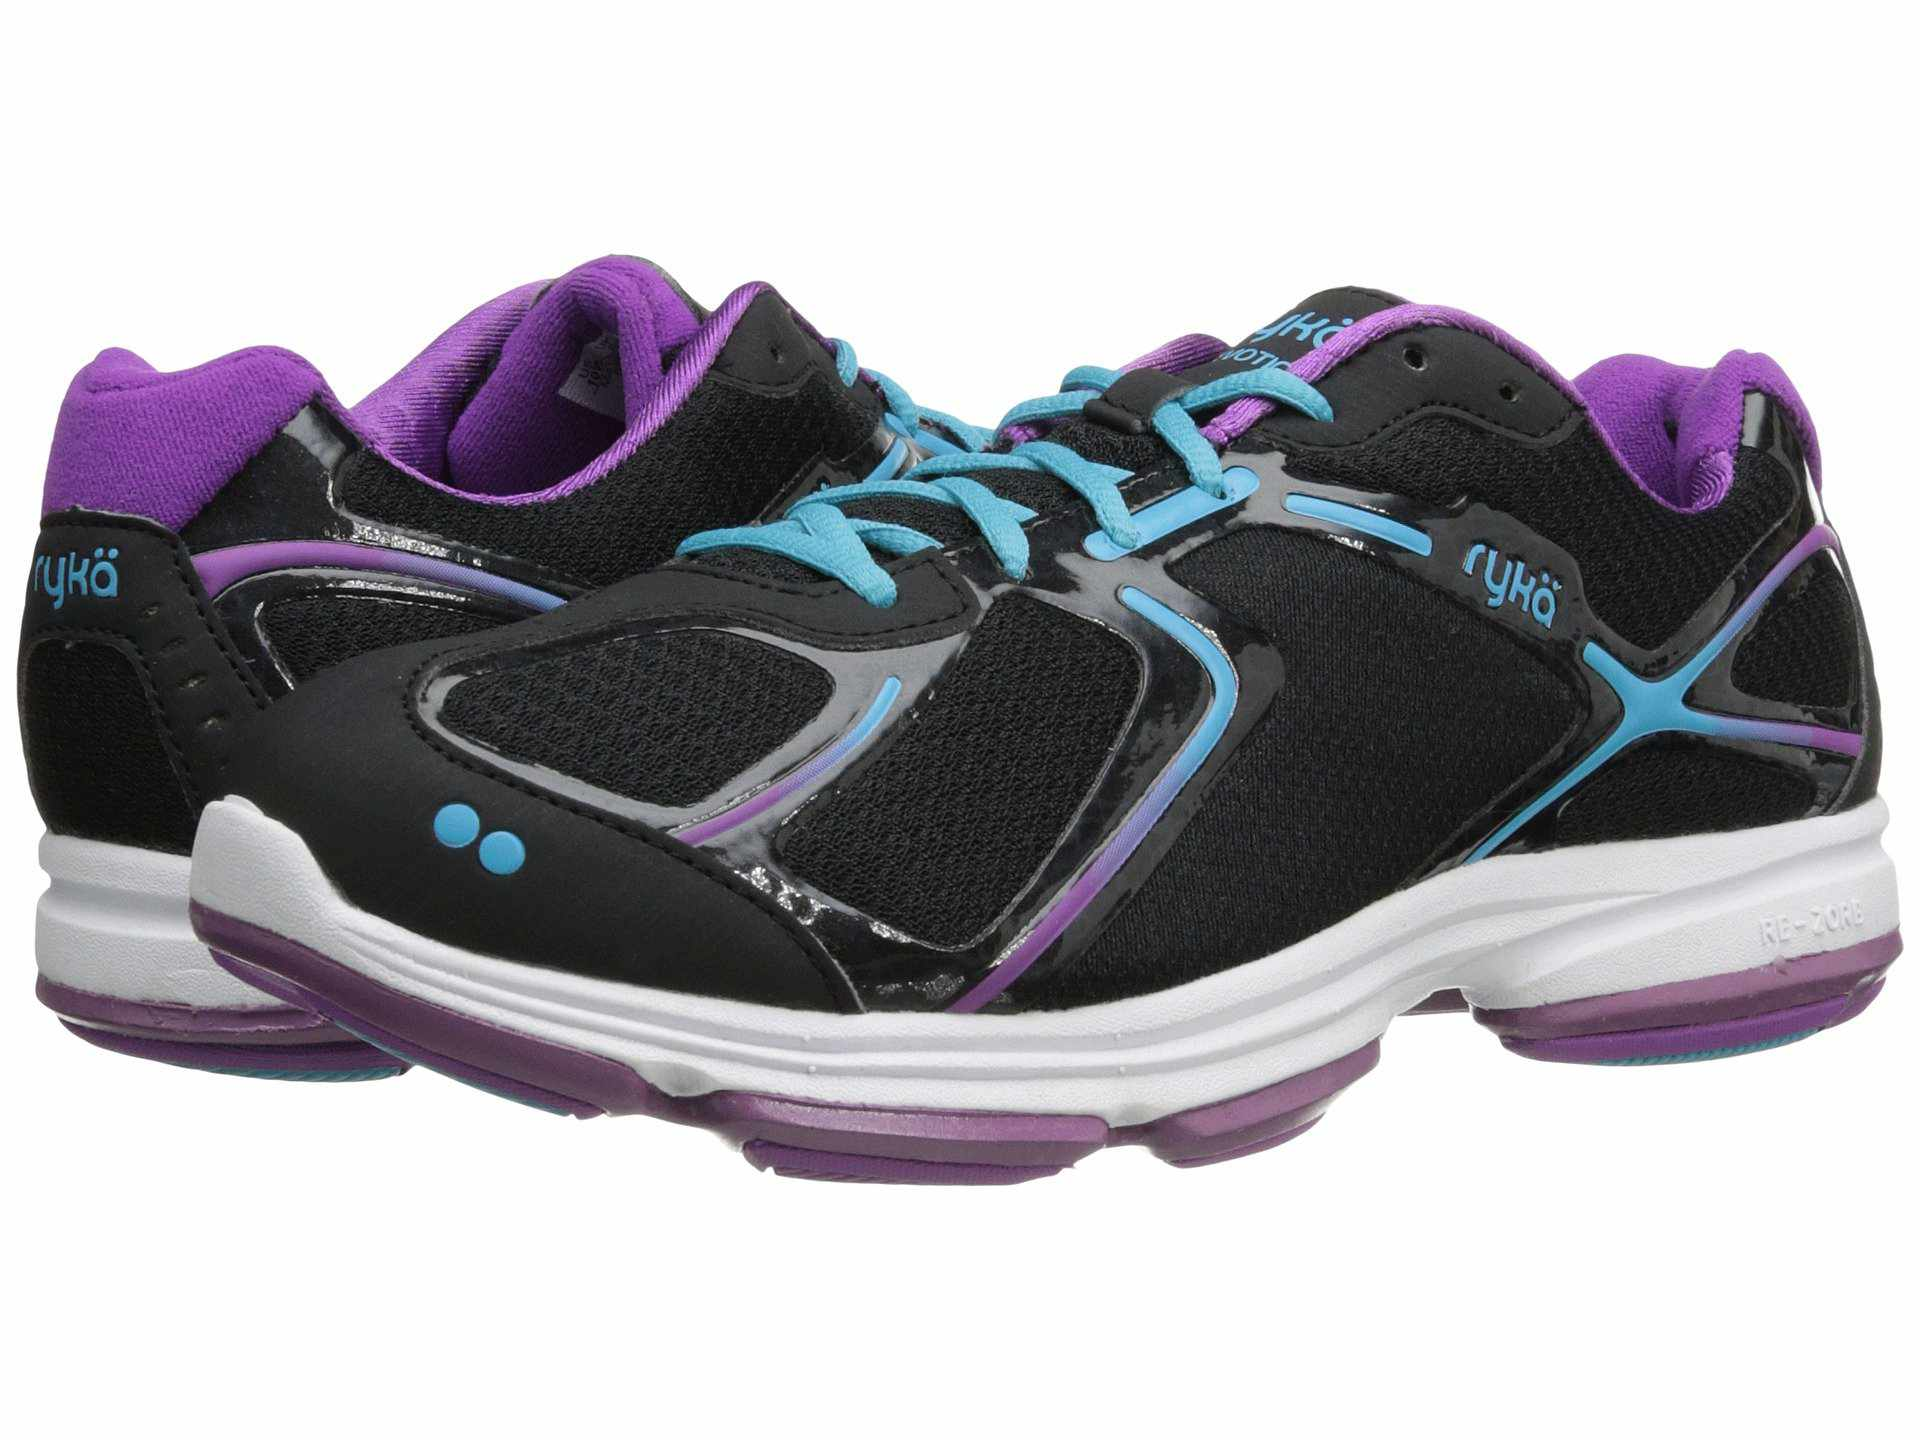 Best Budget for Women: Ryka Women's Devotion Walking Shoe